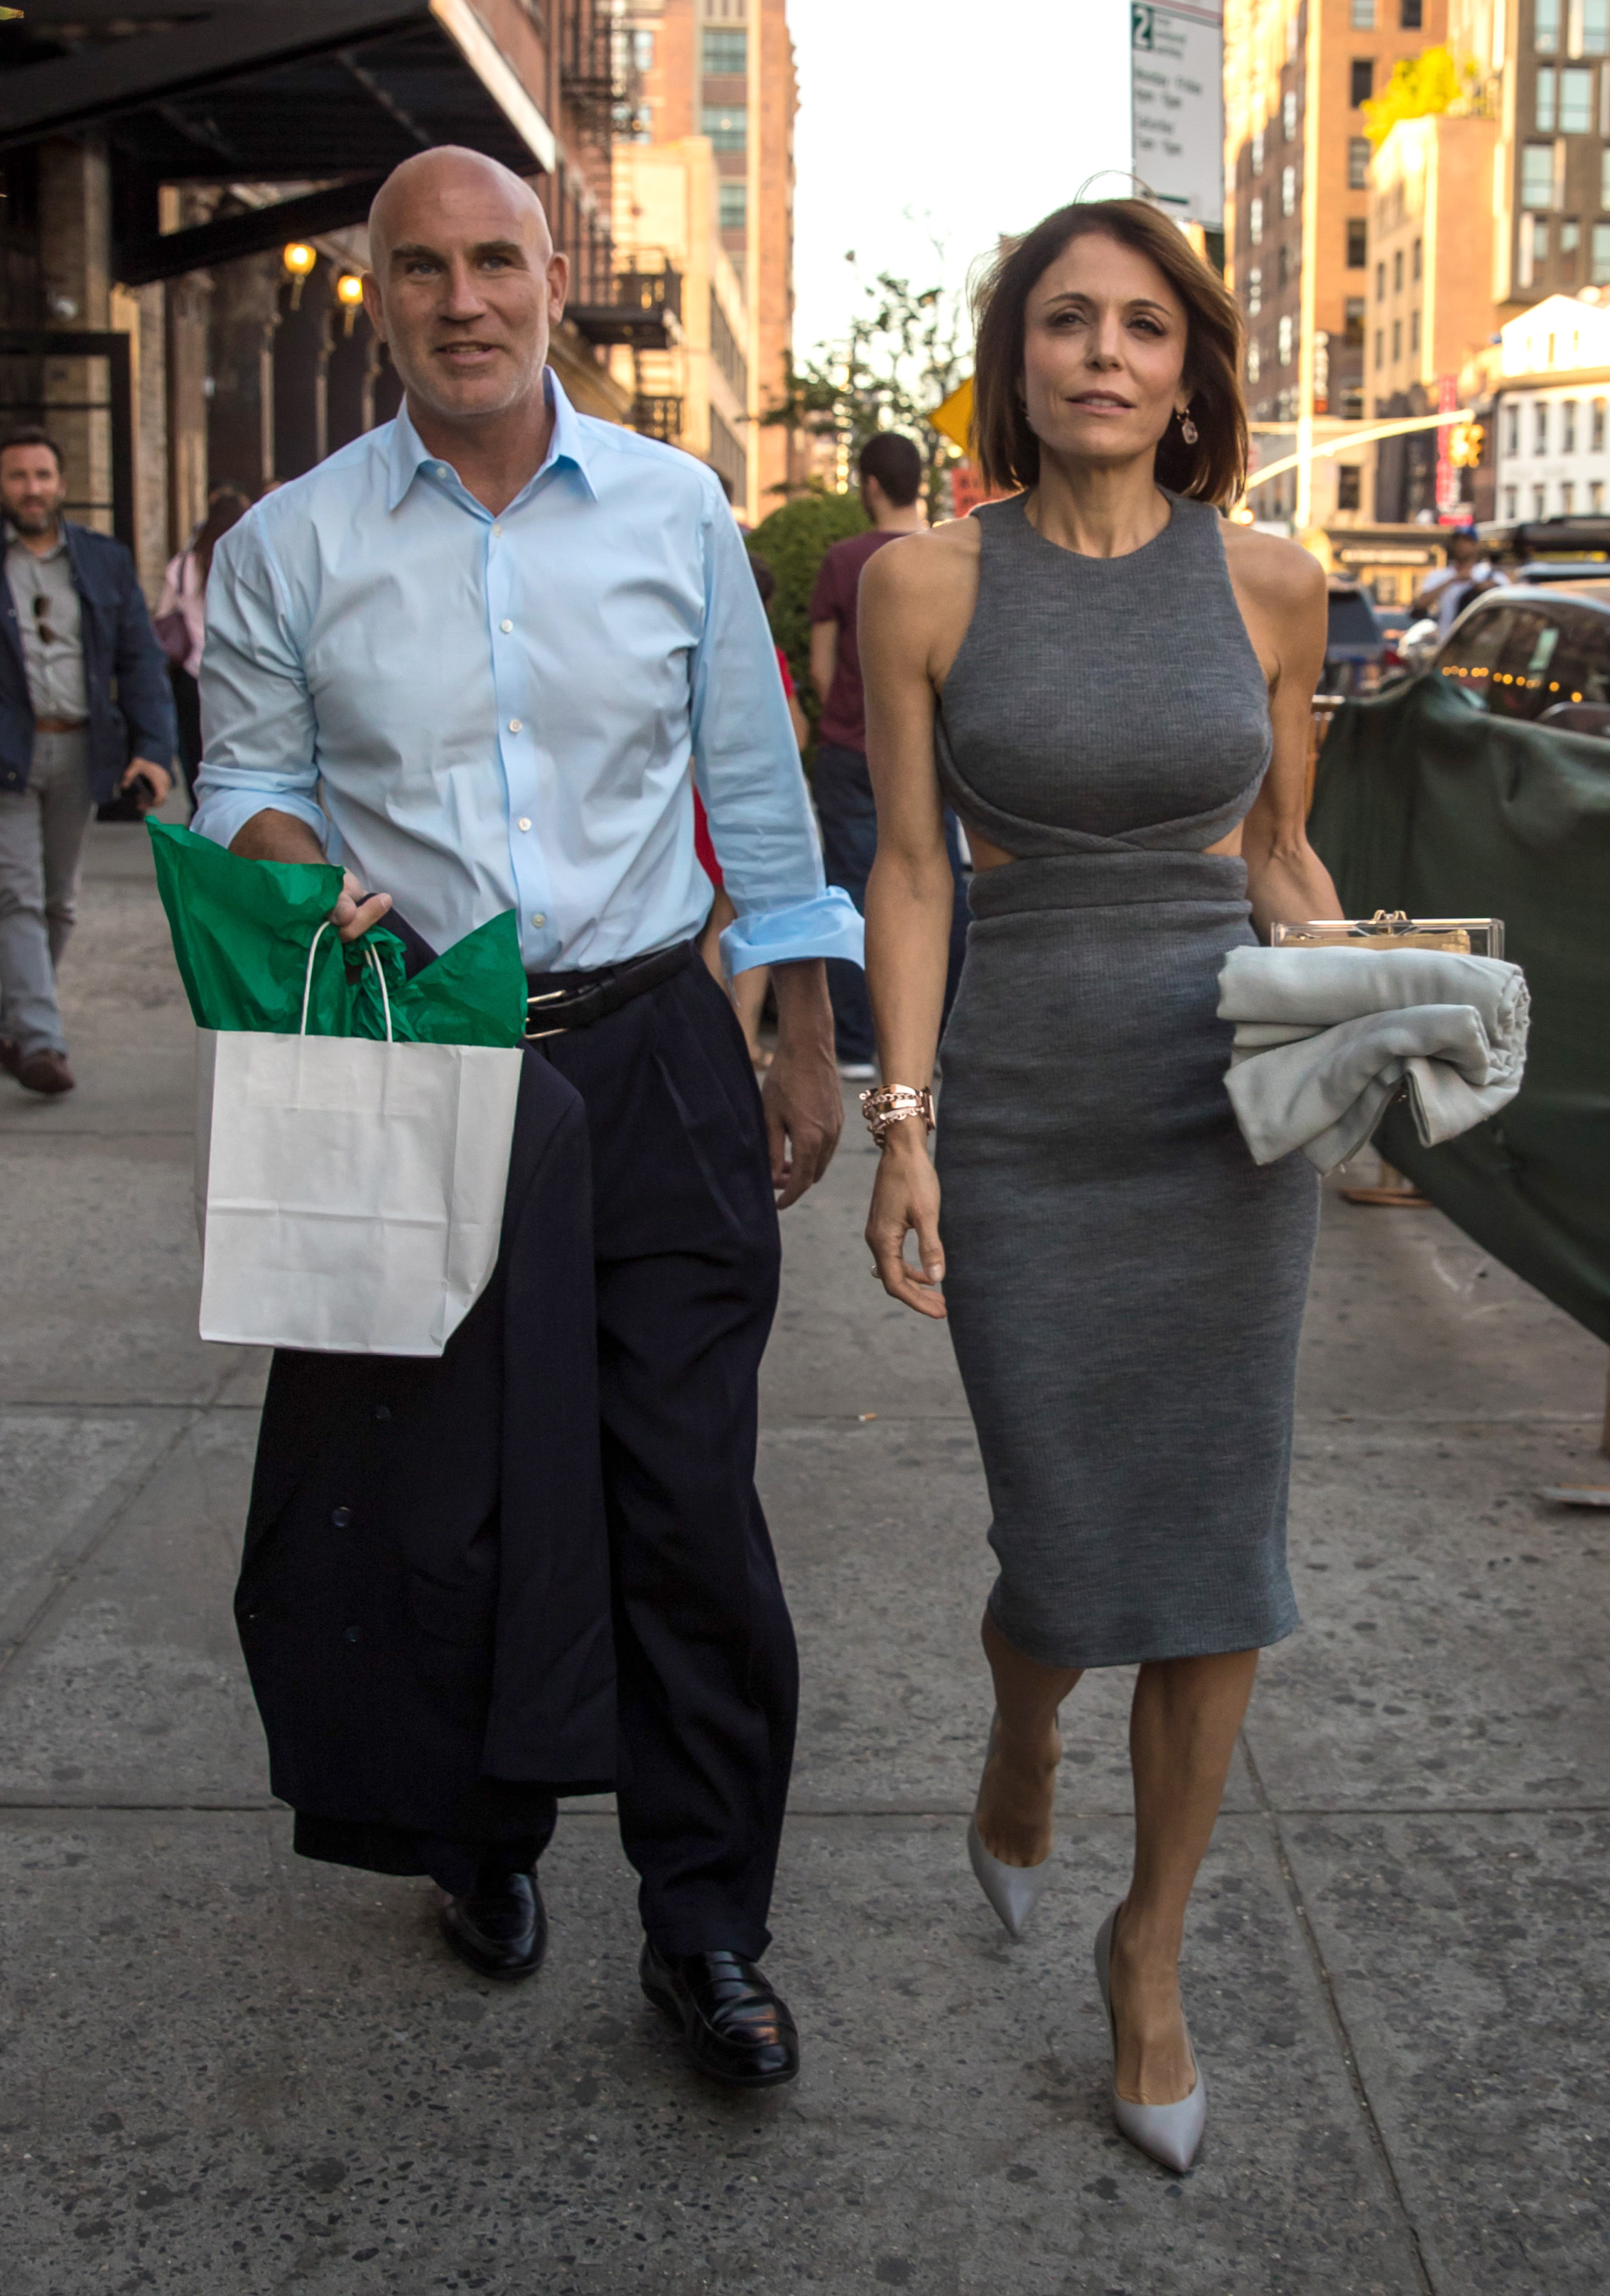 Bethenny Frankel leaving Soho House in New York City with her new boyfriend Dennis ShieldsFeaturing: Bethenny Frankel, Dennis ShieldsWhere: New York City, New York, United StatesWhen: 14 Jun 2016Credit: WENN.com